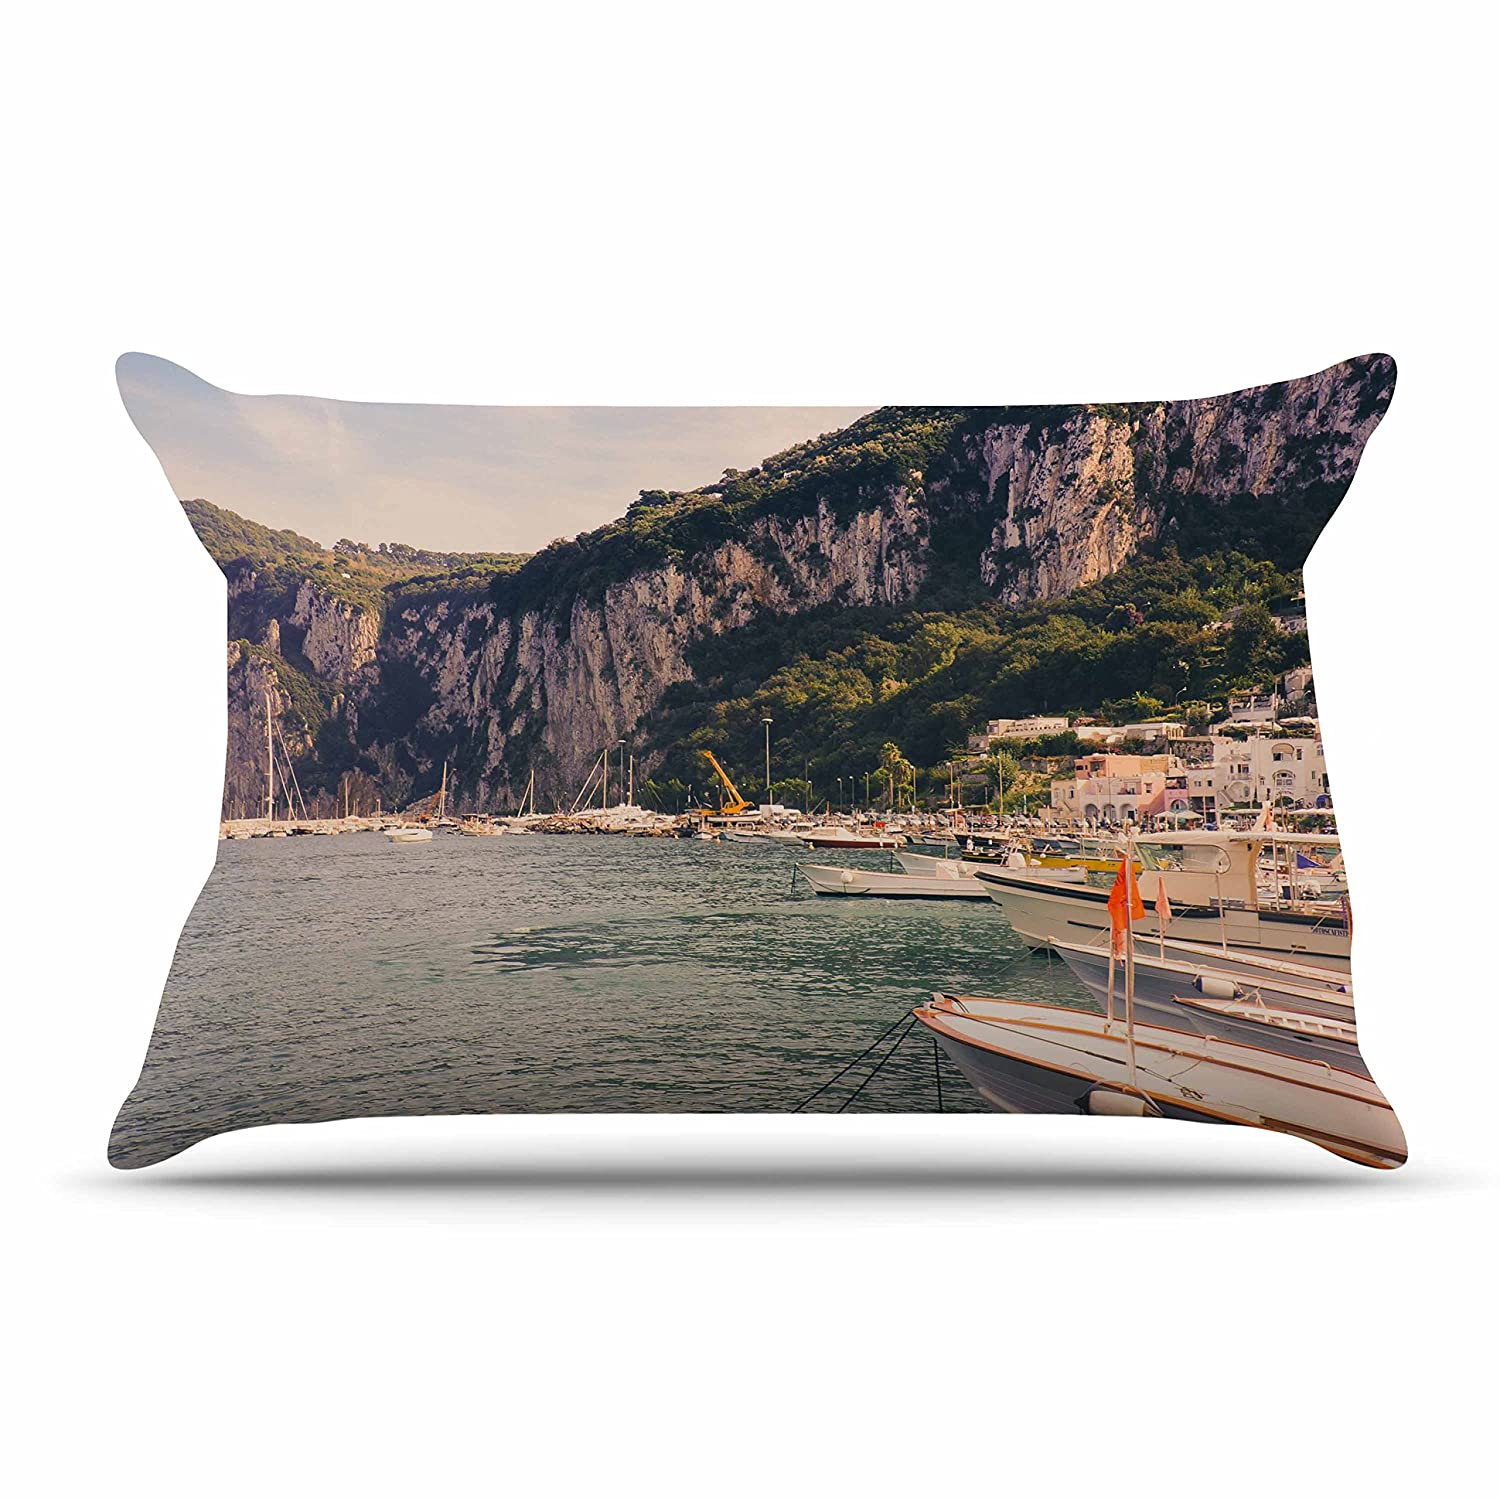 30 by 20-Inch Kess InHouse Violet Hudson Boats of Paradise Teal Green Standard Pillow Case 30 X 20